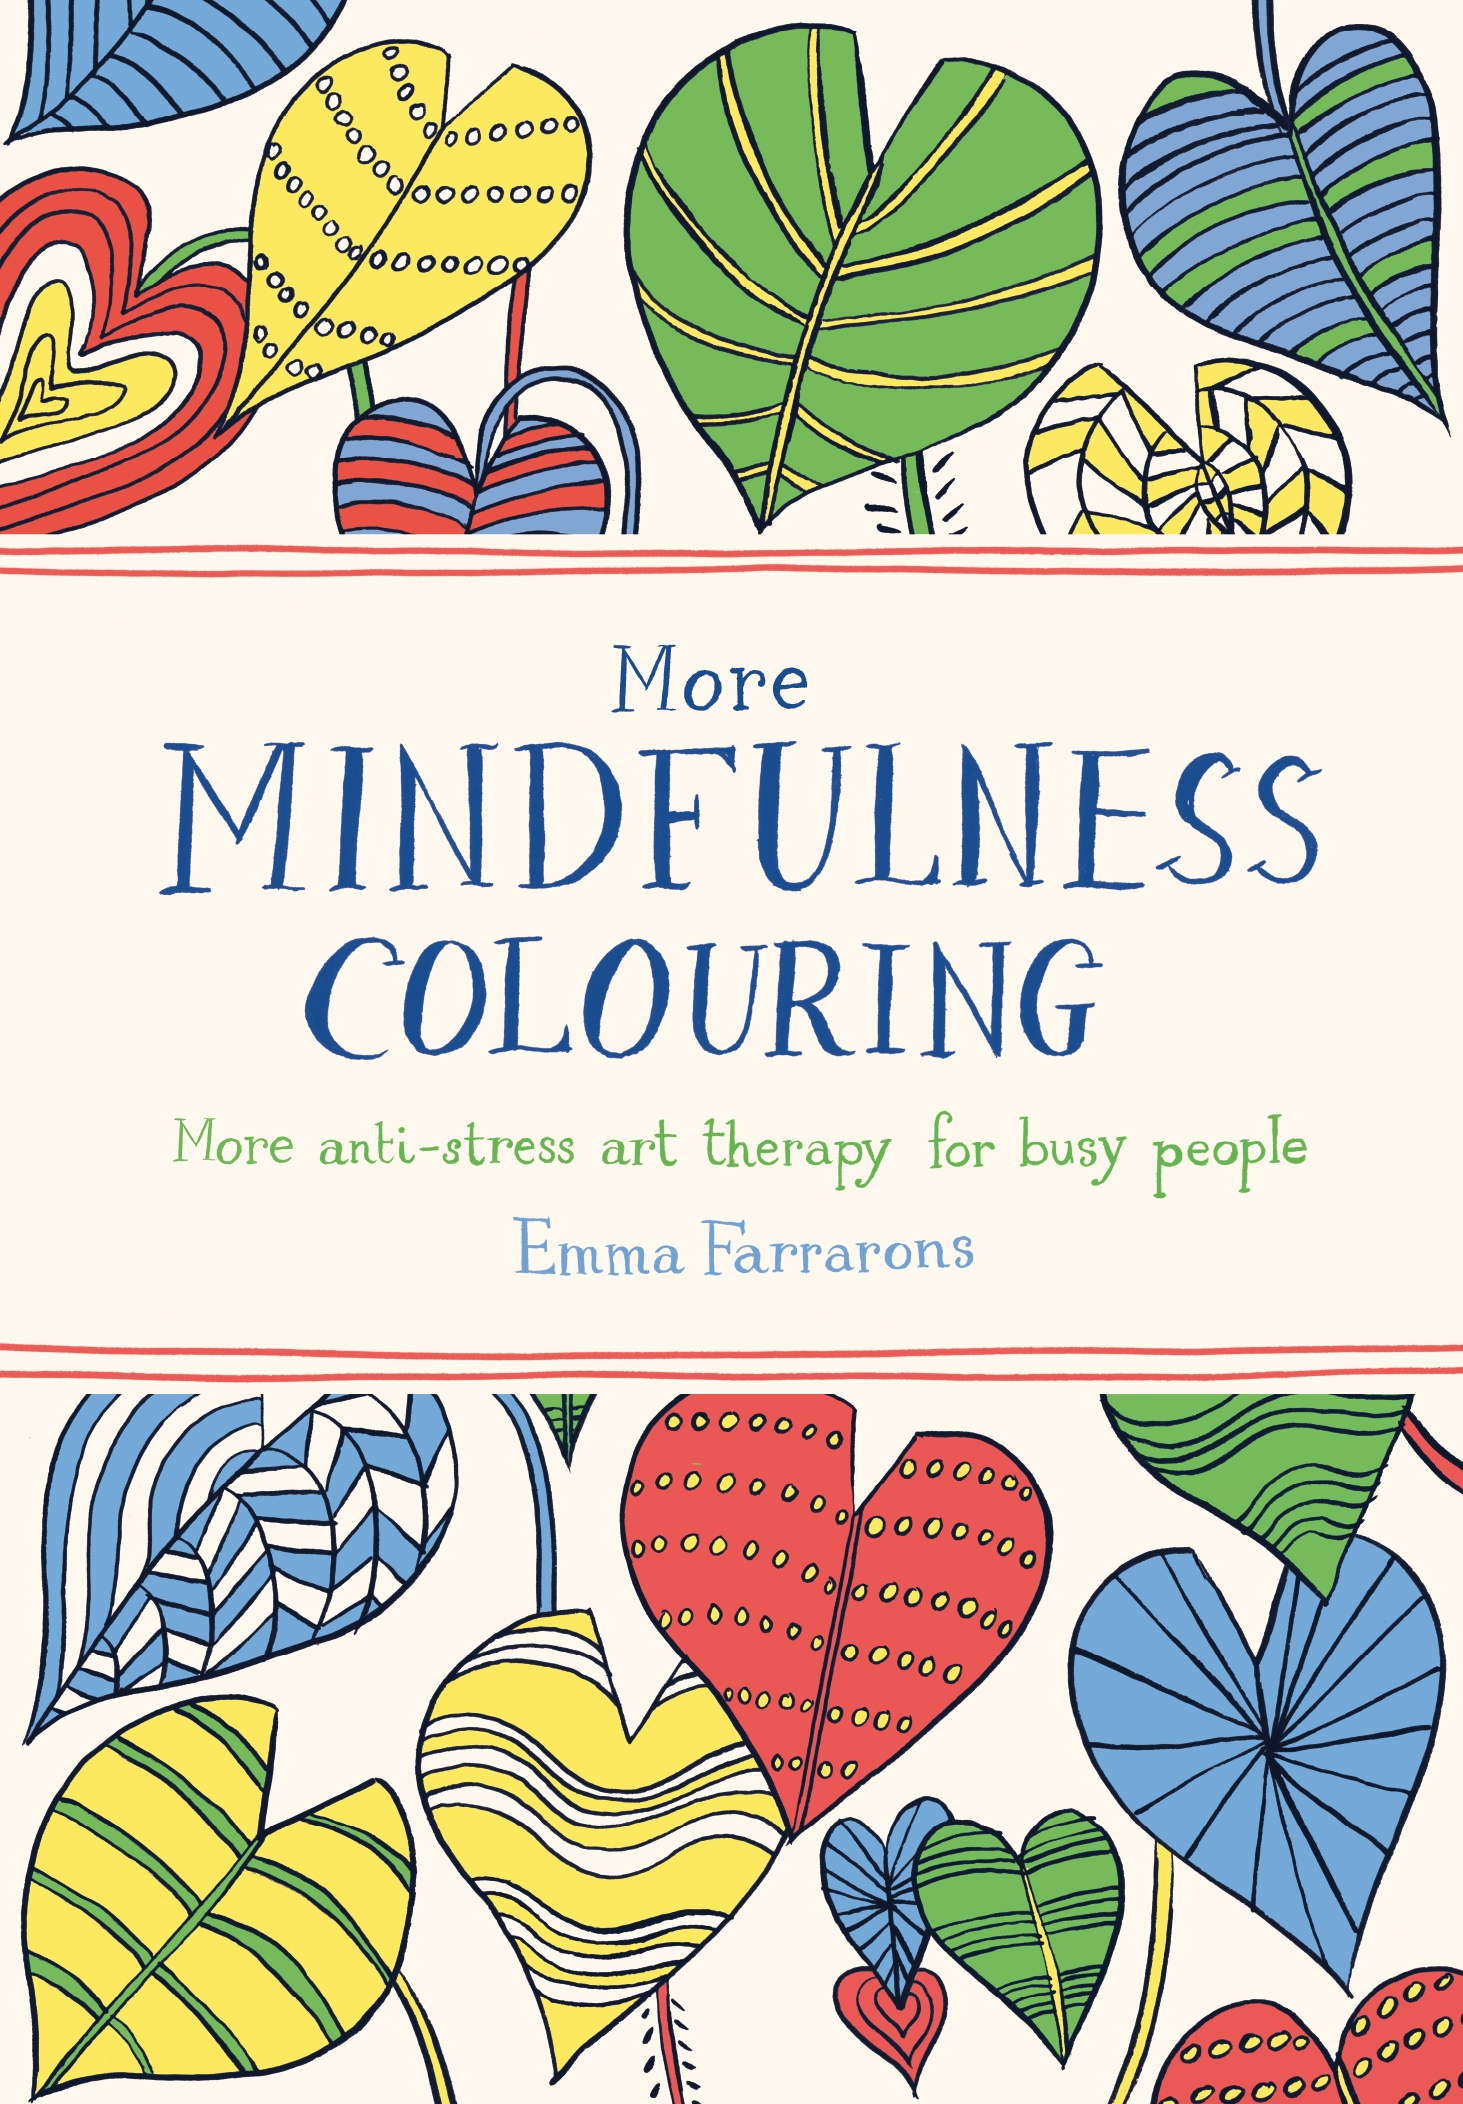 Mindfulness coloring book - More Mindfulness Colouring Download Image